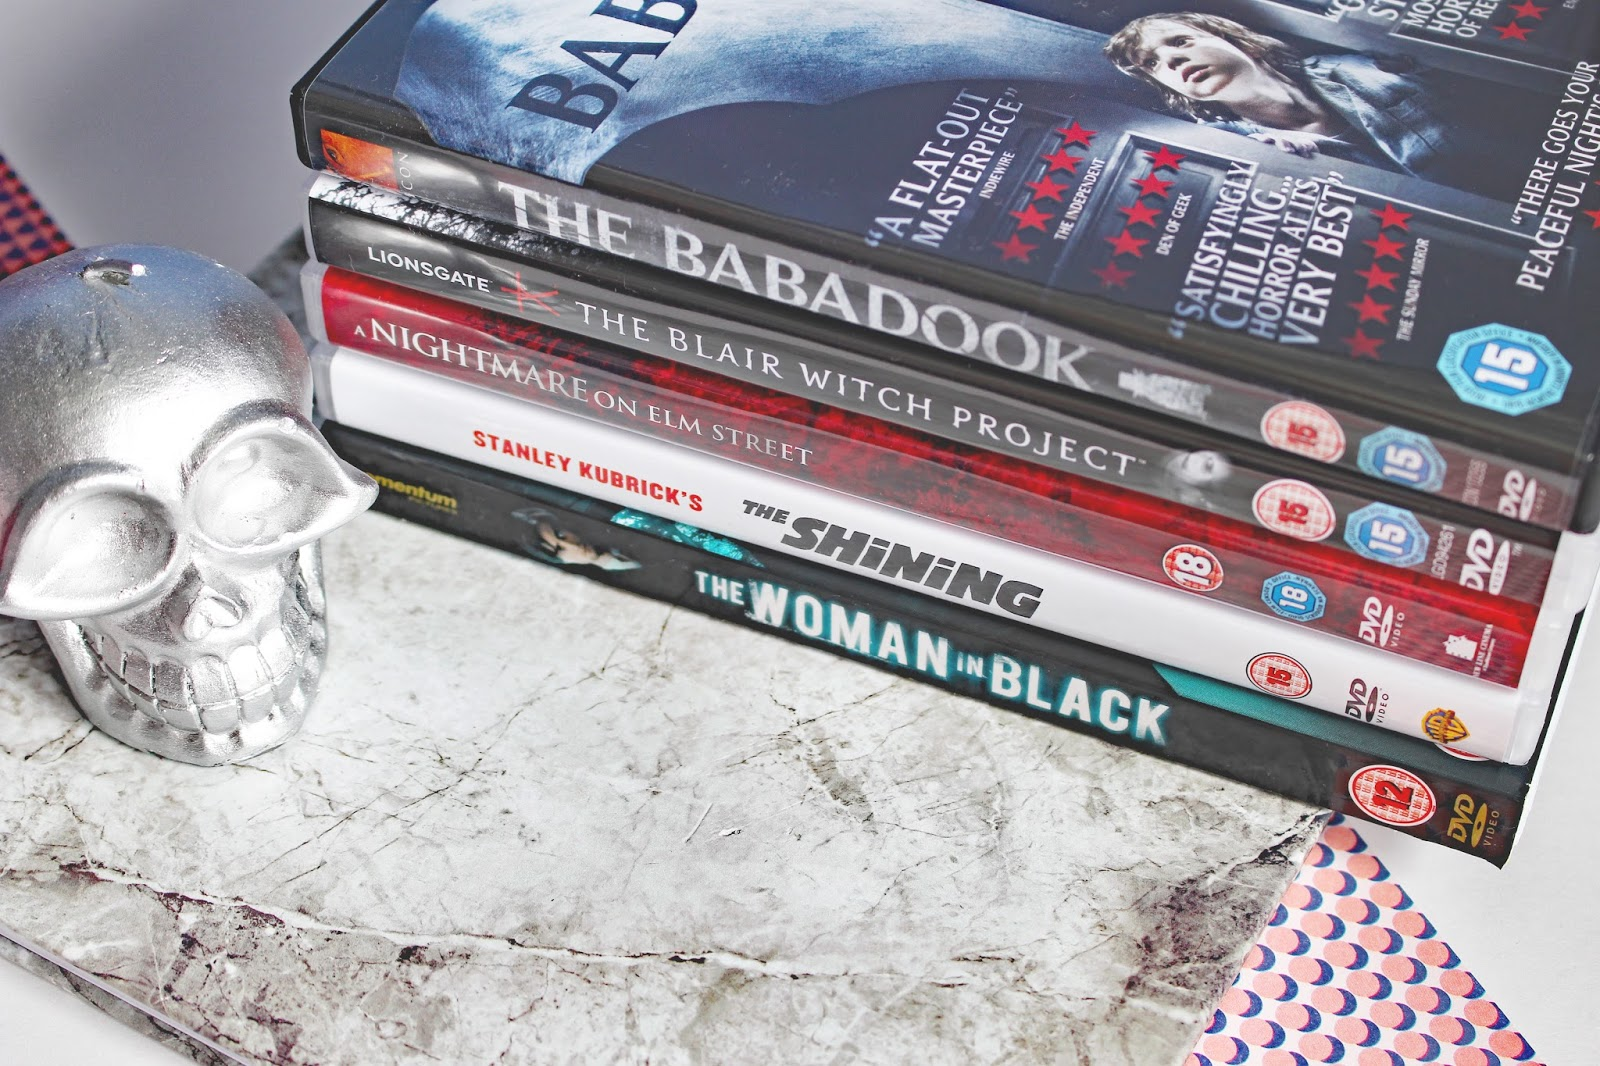 My Top 10 Favourite Horror Movies  films blood guts gore Netflix Babadook review recommendations  DVD